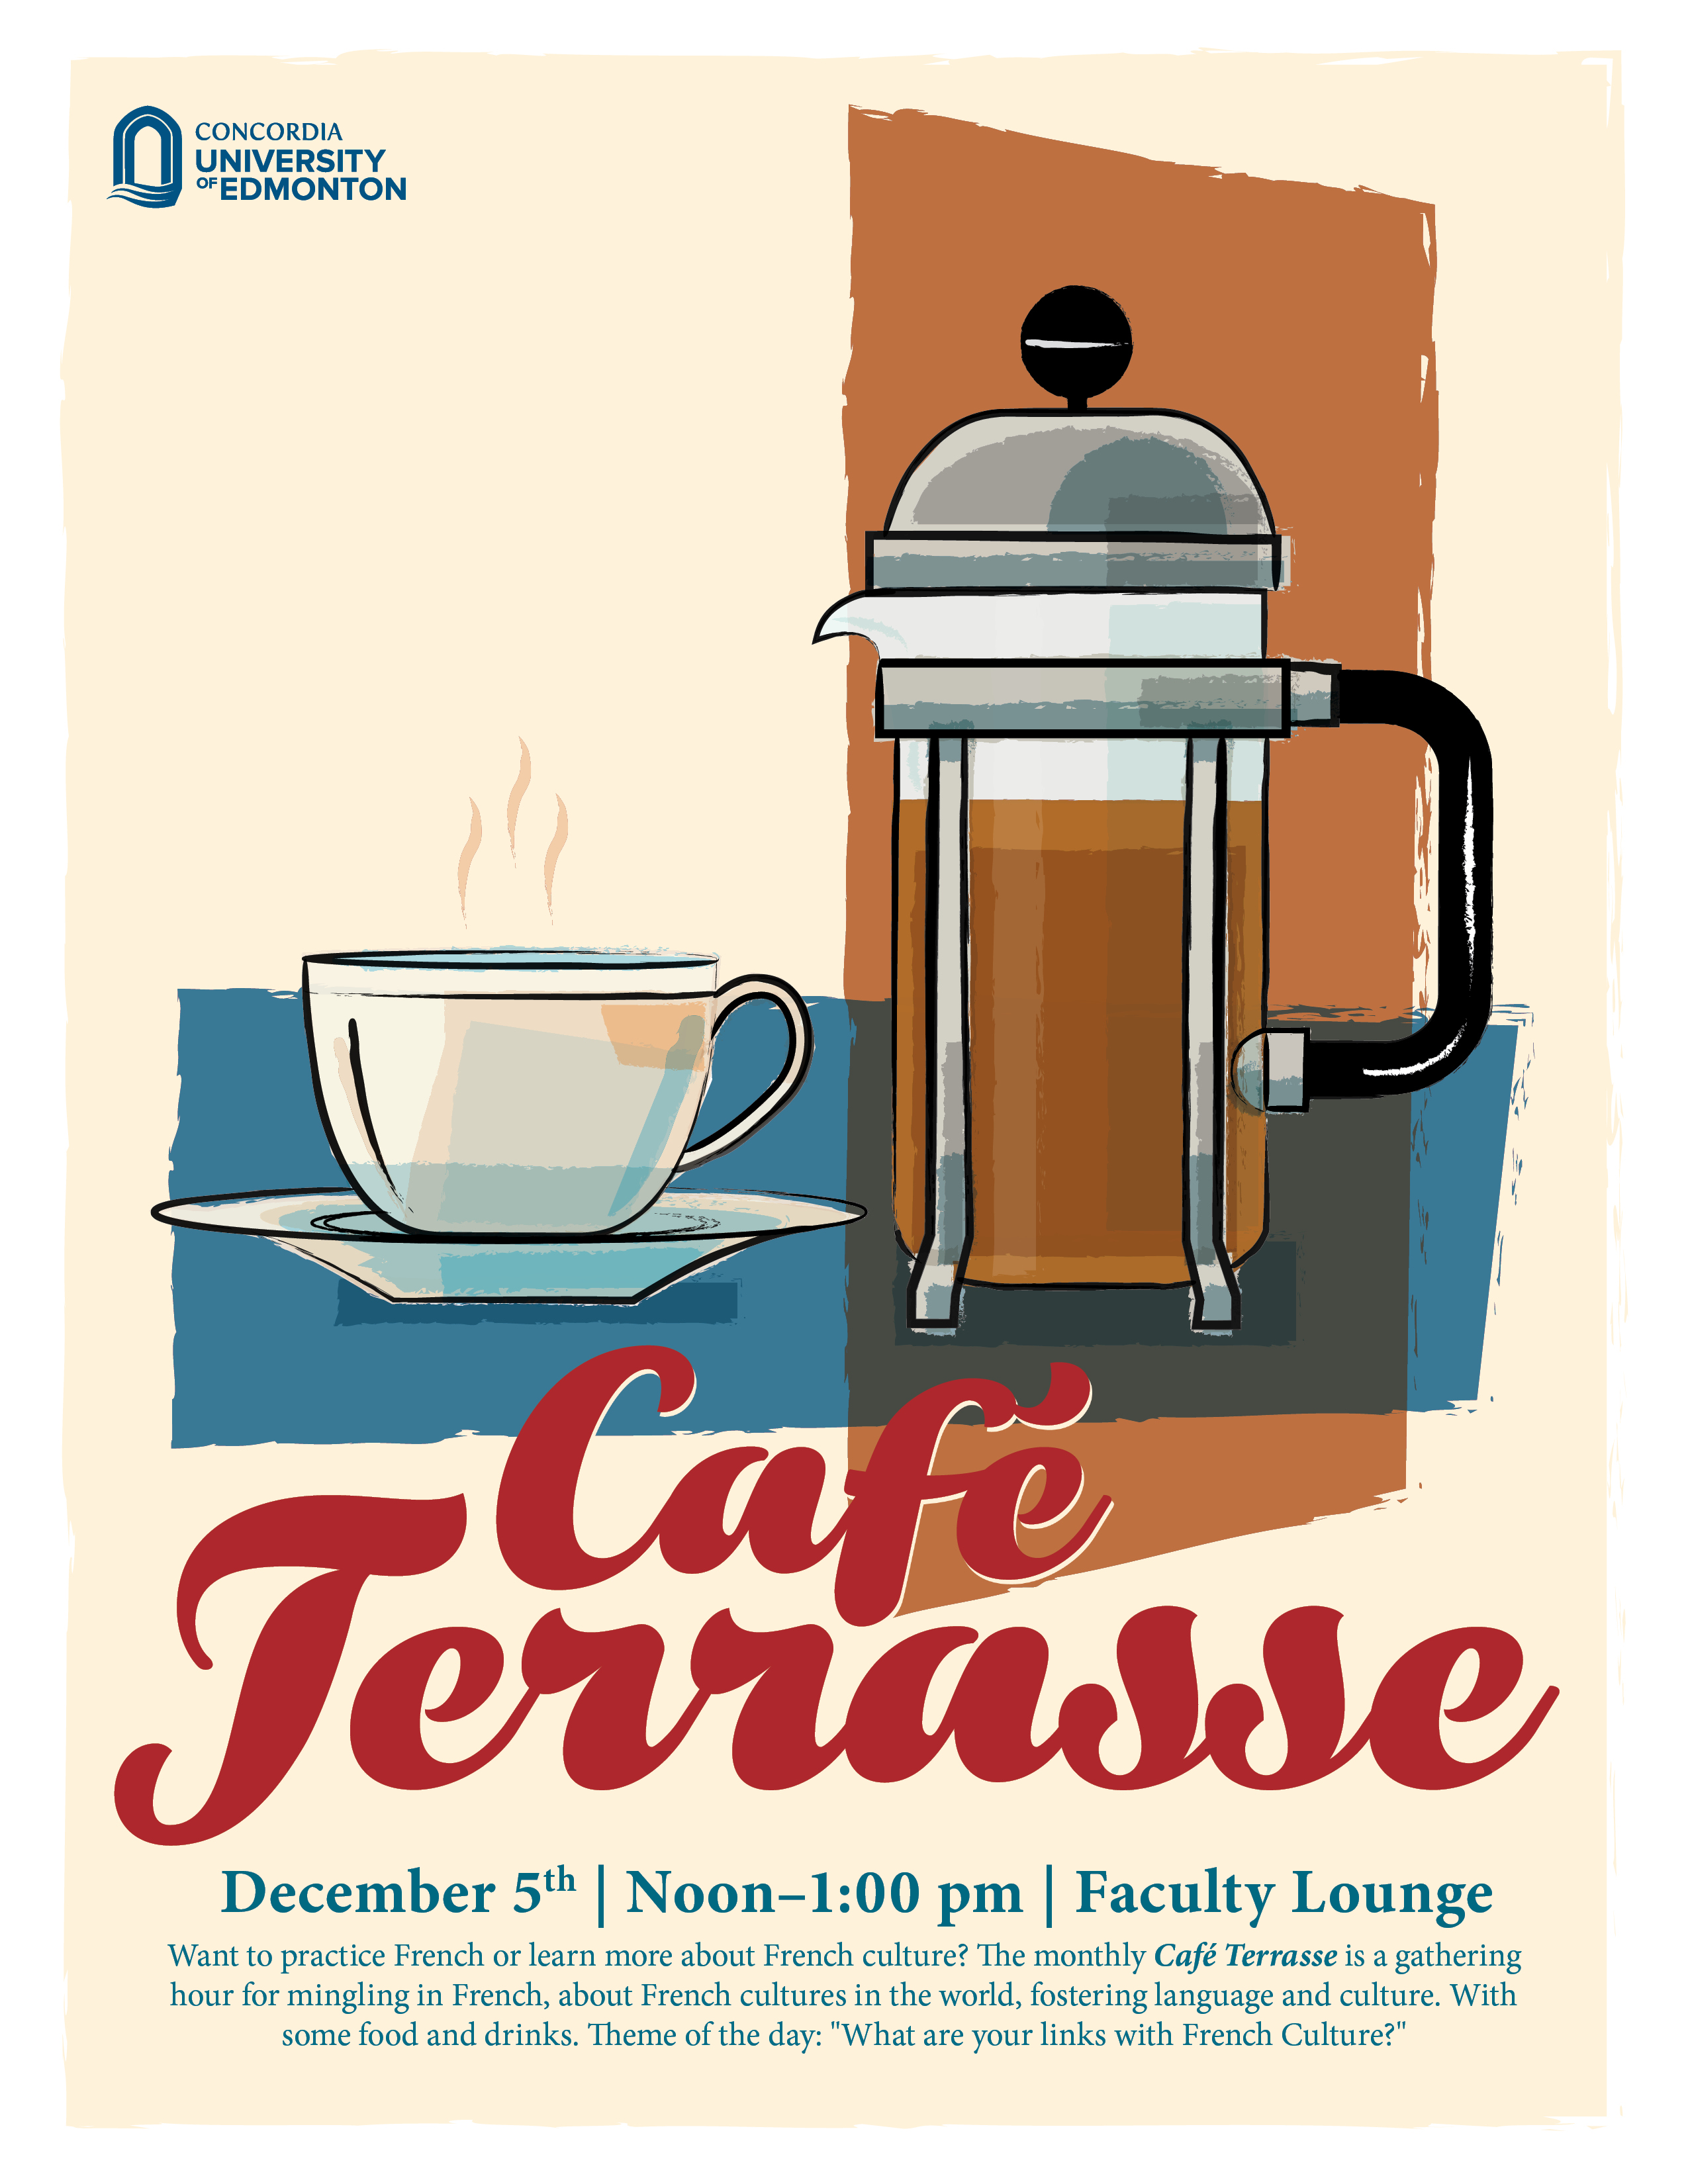 Invitation to second caf terrasse french mingling monday cafeterrasseposterdec2016 stopboris Gallery